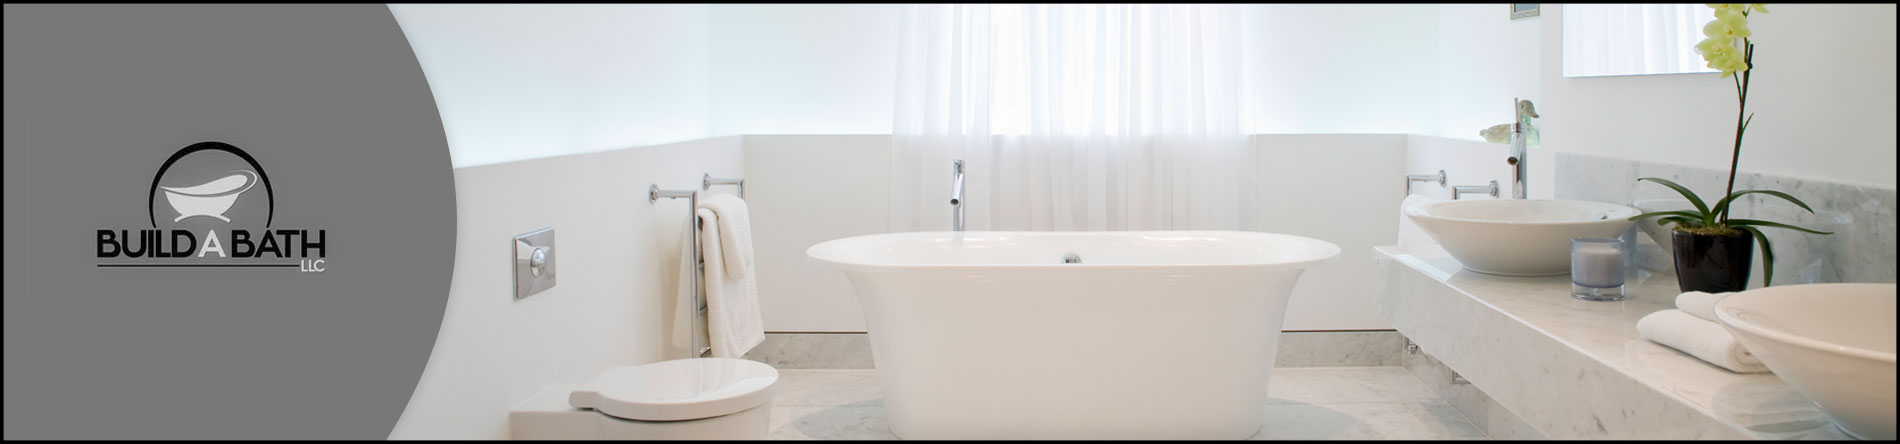 Build A Bath, LLC is a Remodeling Contractor in Highlands Ranch, CO